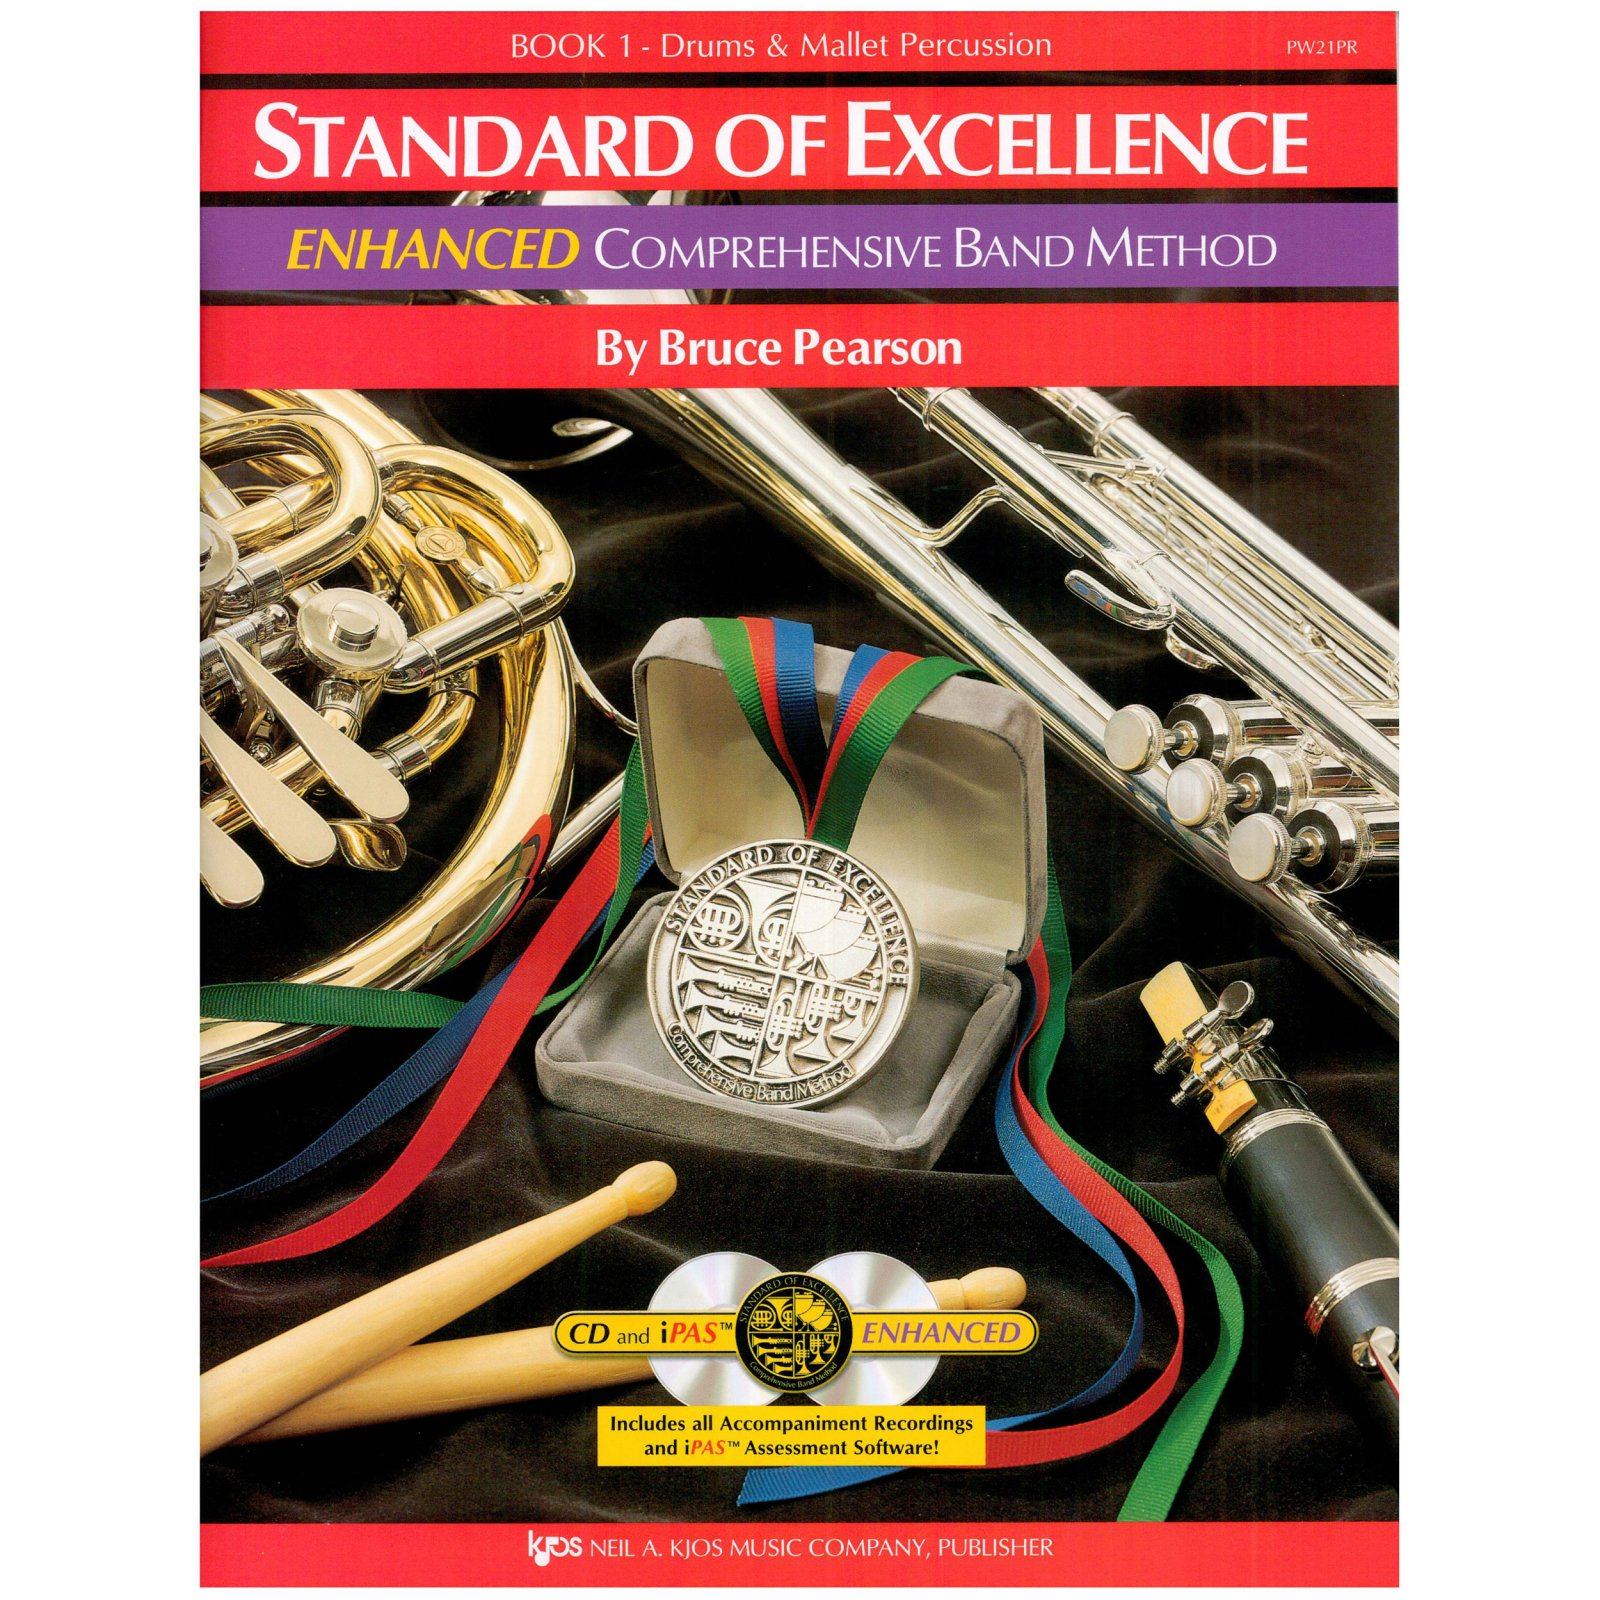 Standard of Excellence Drums & Mallet book 1 Enhanced